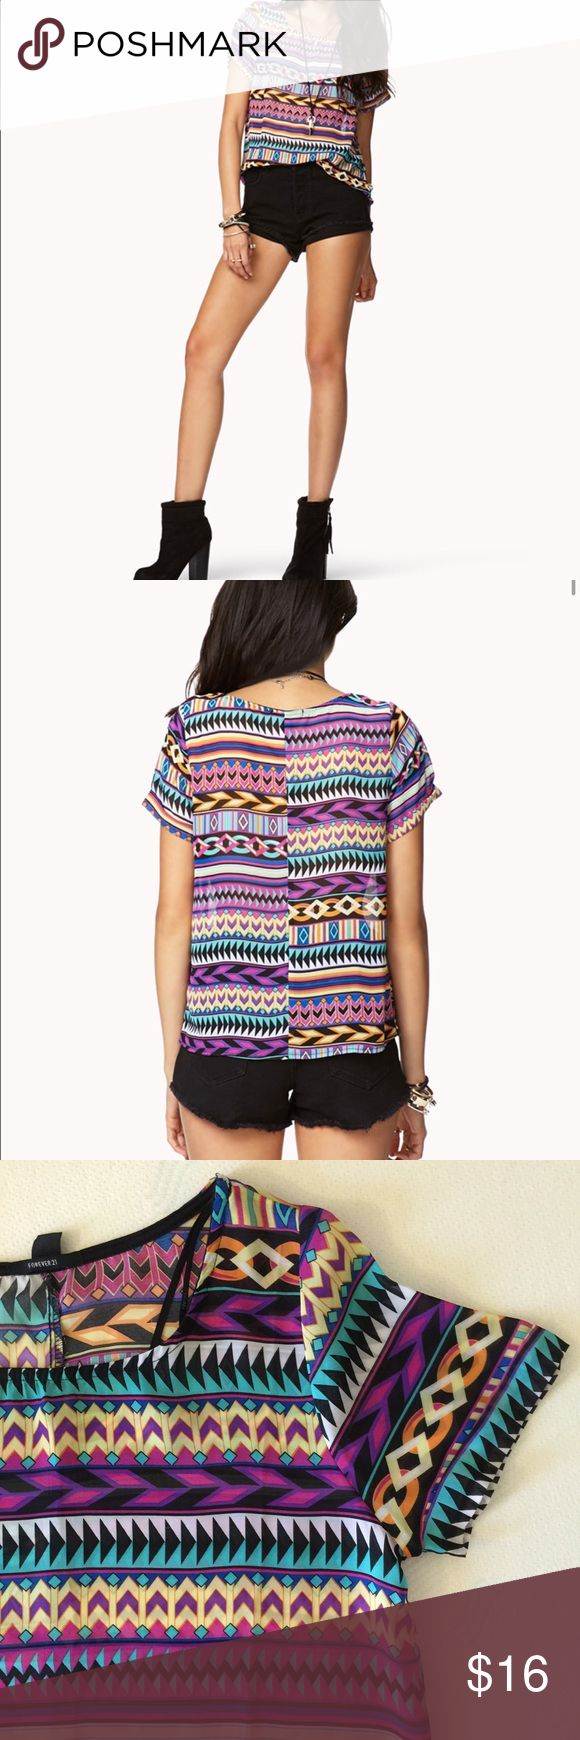 """✨ HP ✨ Aztec Print Top Pre-loved in excellent condition. Print top that's easy to throw on with anything. Size medium (could fit small). 100% polyester. Ever so slightly sheer. """"Best in Tops"""" Host Pick on 4/4/17 ✨ Forever 21 Tops Tees - Short Sleeve"""